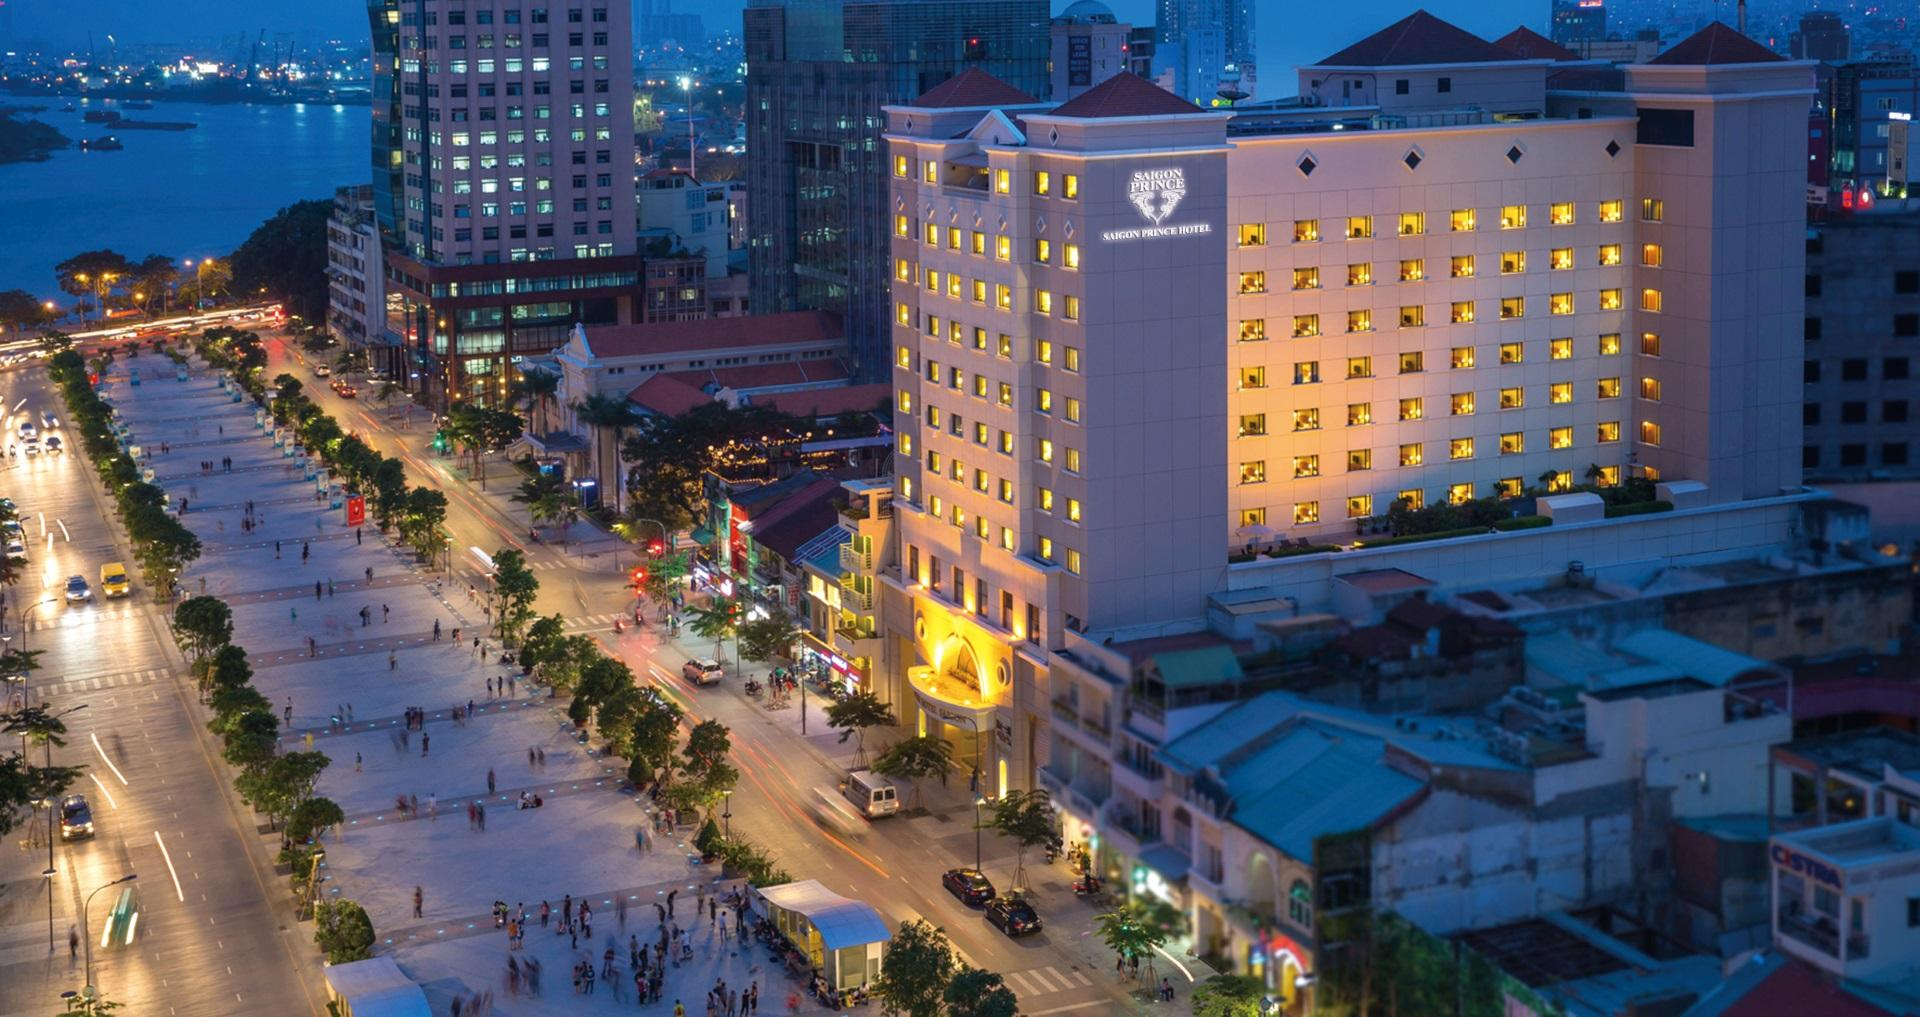 Hotels in District 1, Ho Chi Minh City. - Booking.com